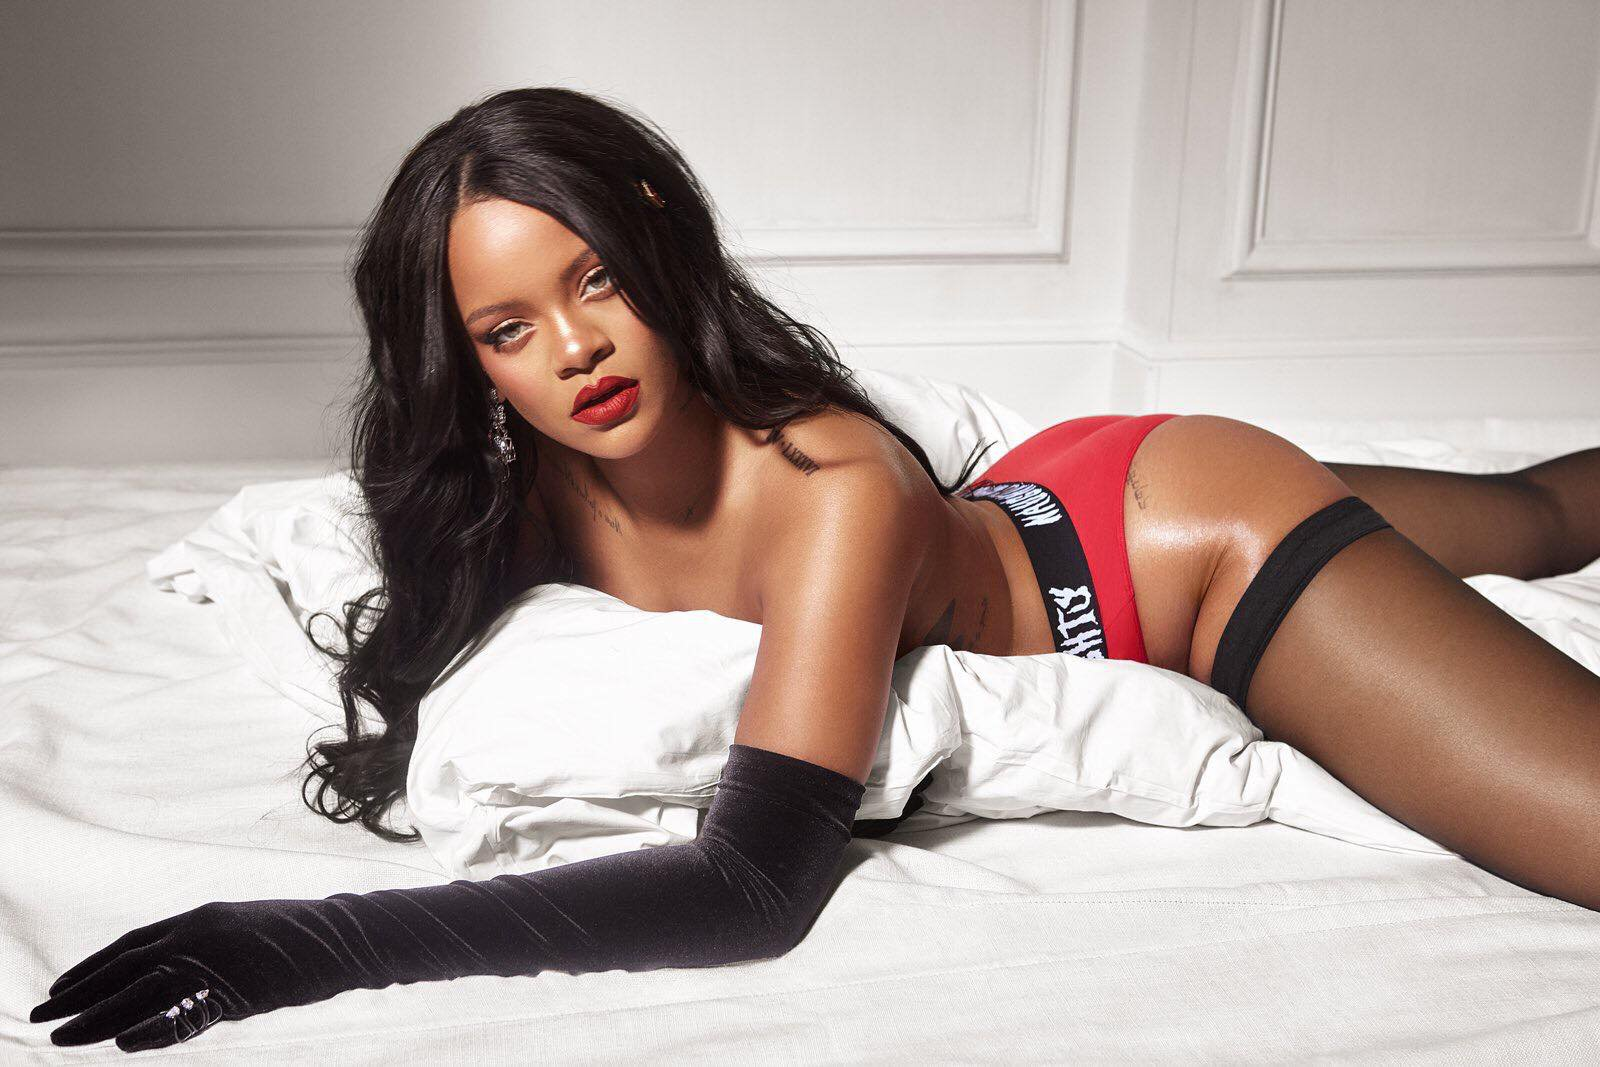 Rihanna sets pulses racing as she poses topless in bed to promote new Fenty and Savage lingerie collaboration